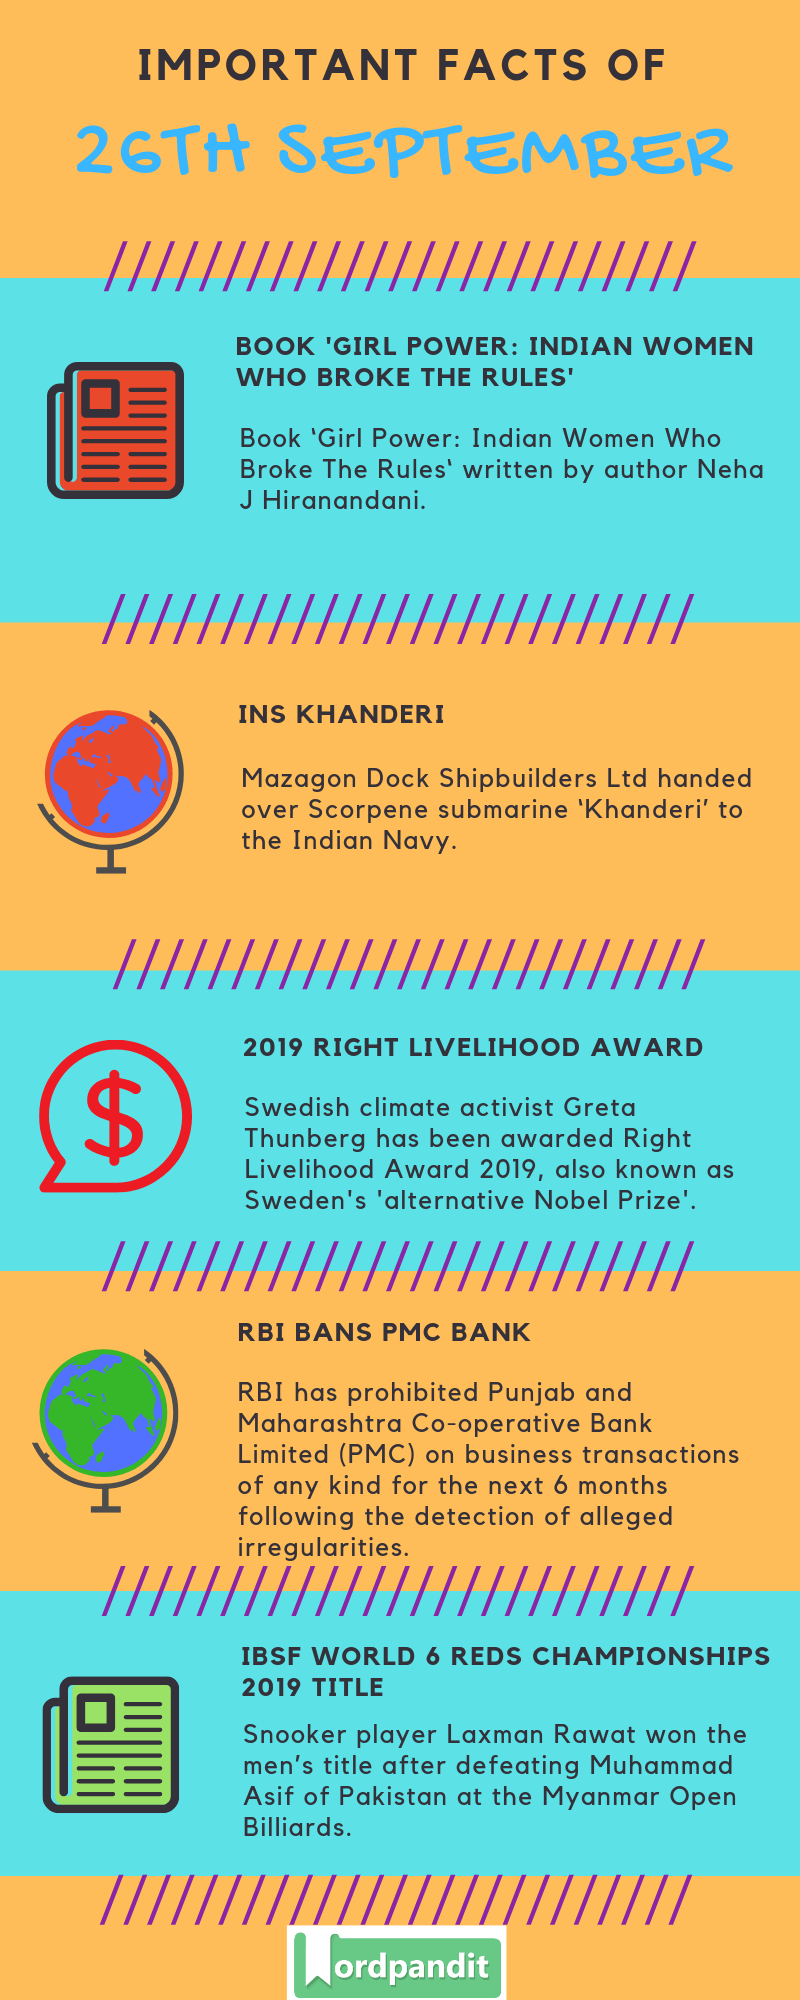 Daily Current Affairs 26 September 2019 Current Affairs Quiz 26 September 2019 Current Affairs Infographic